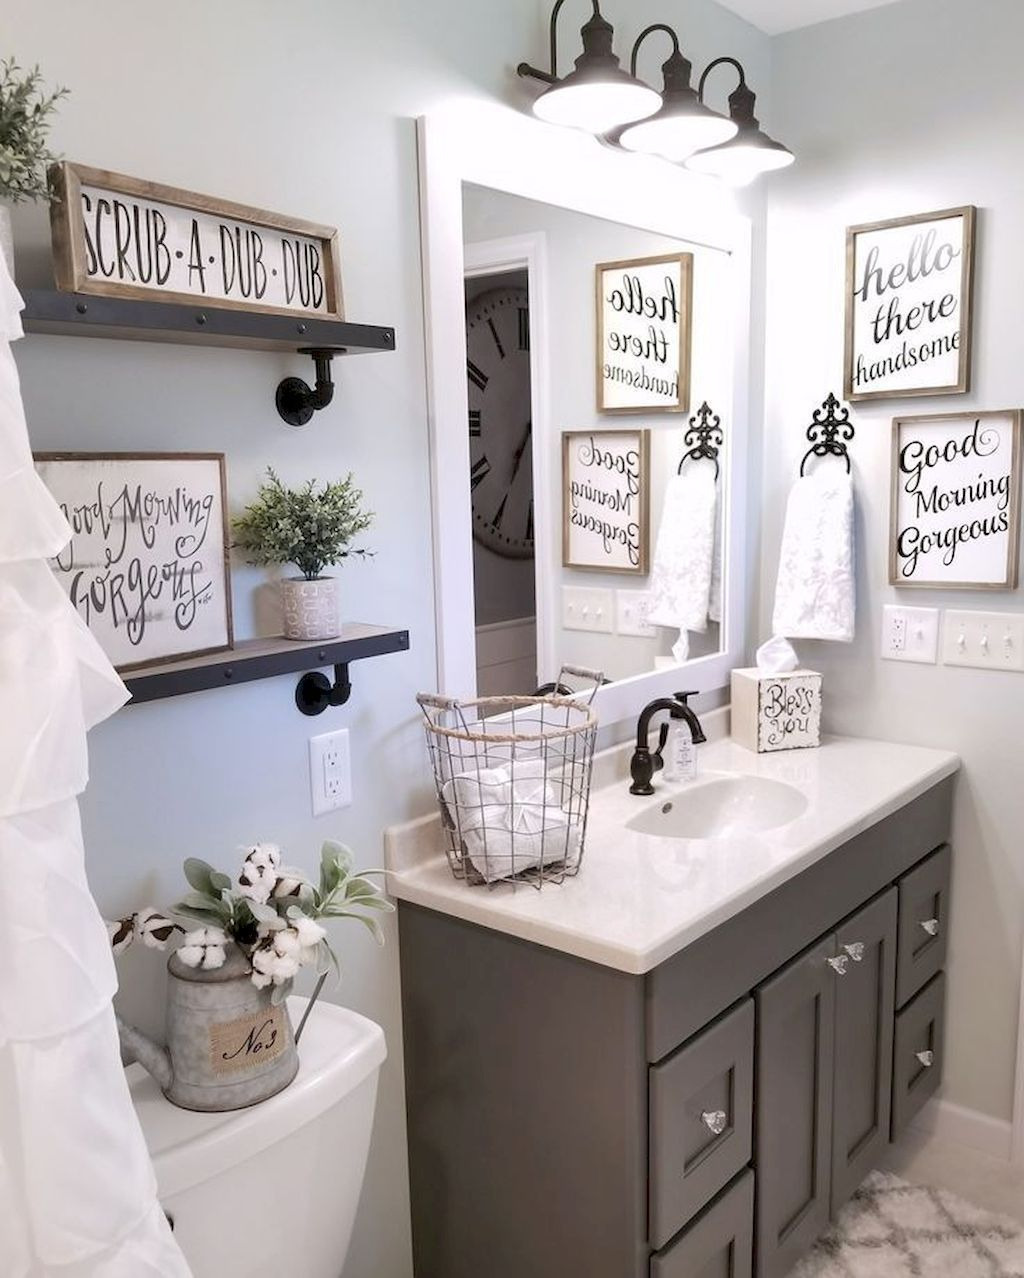 Pictures for Bathroom Decorating Ideas Lovely 30 Best Pinterest Home Decor Ideas that Beautify Your Home